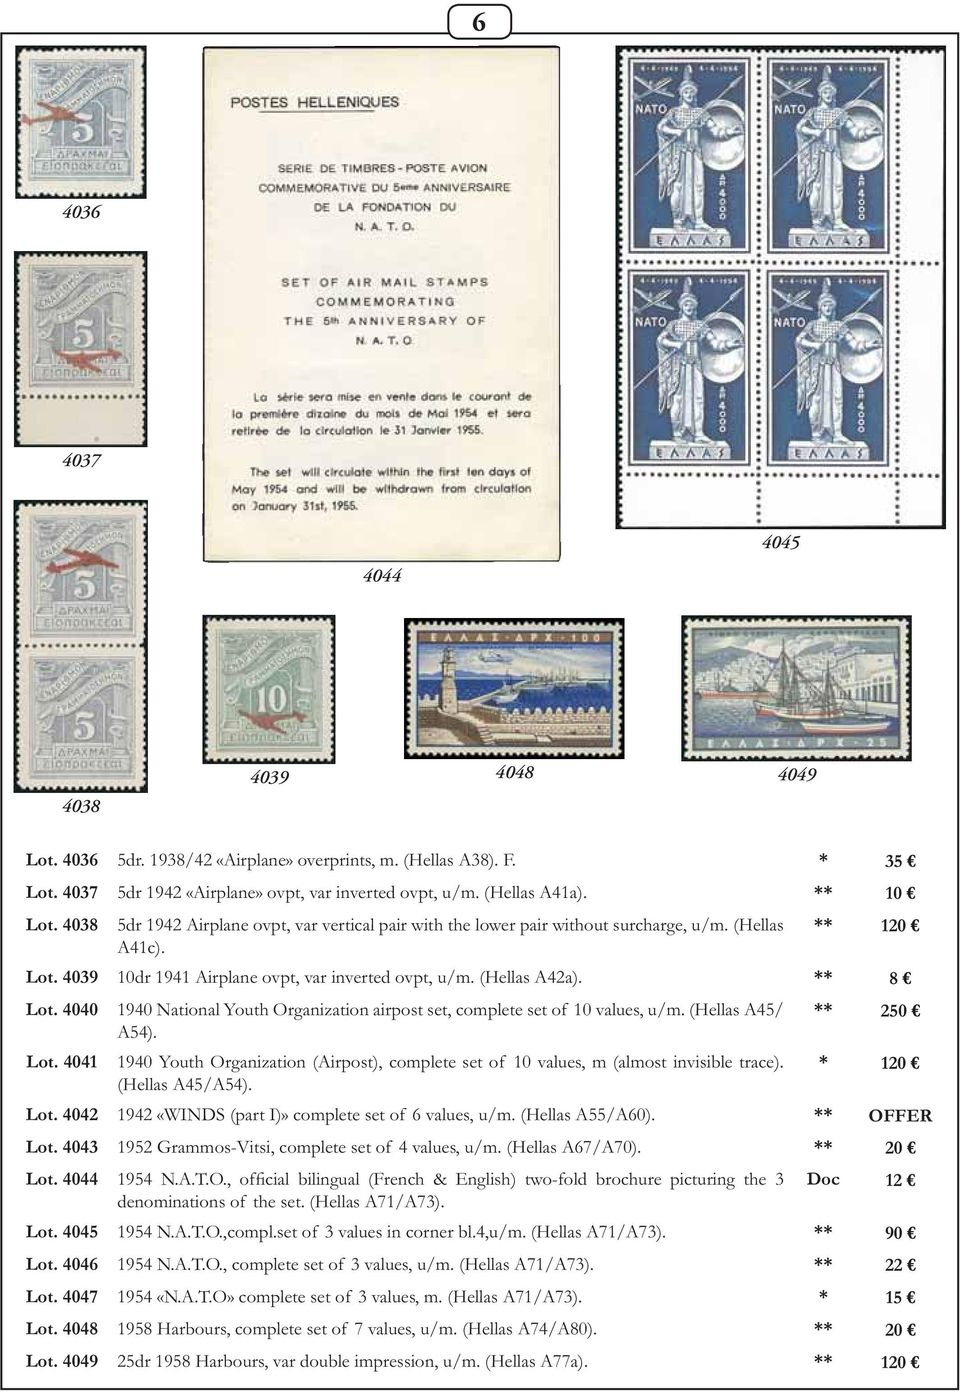 4040 1940 National Youth Organization airpost set, complete set of 10 values, u/m. (Hellas A45/ A54). Lot.